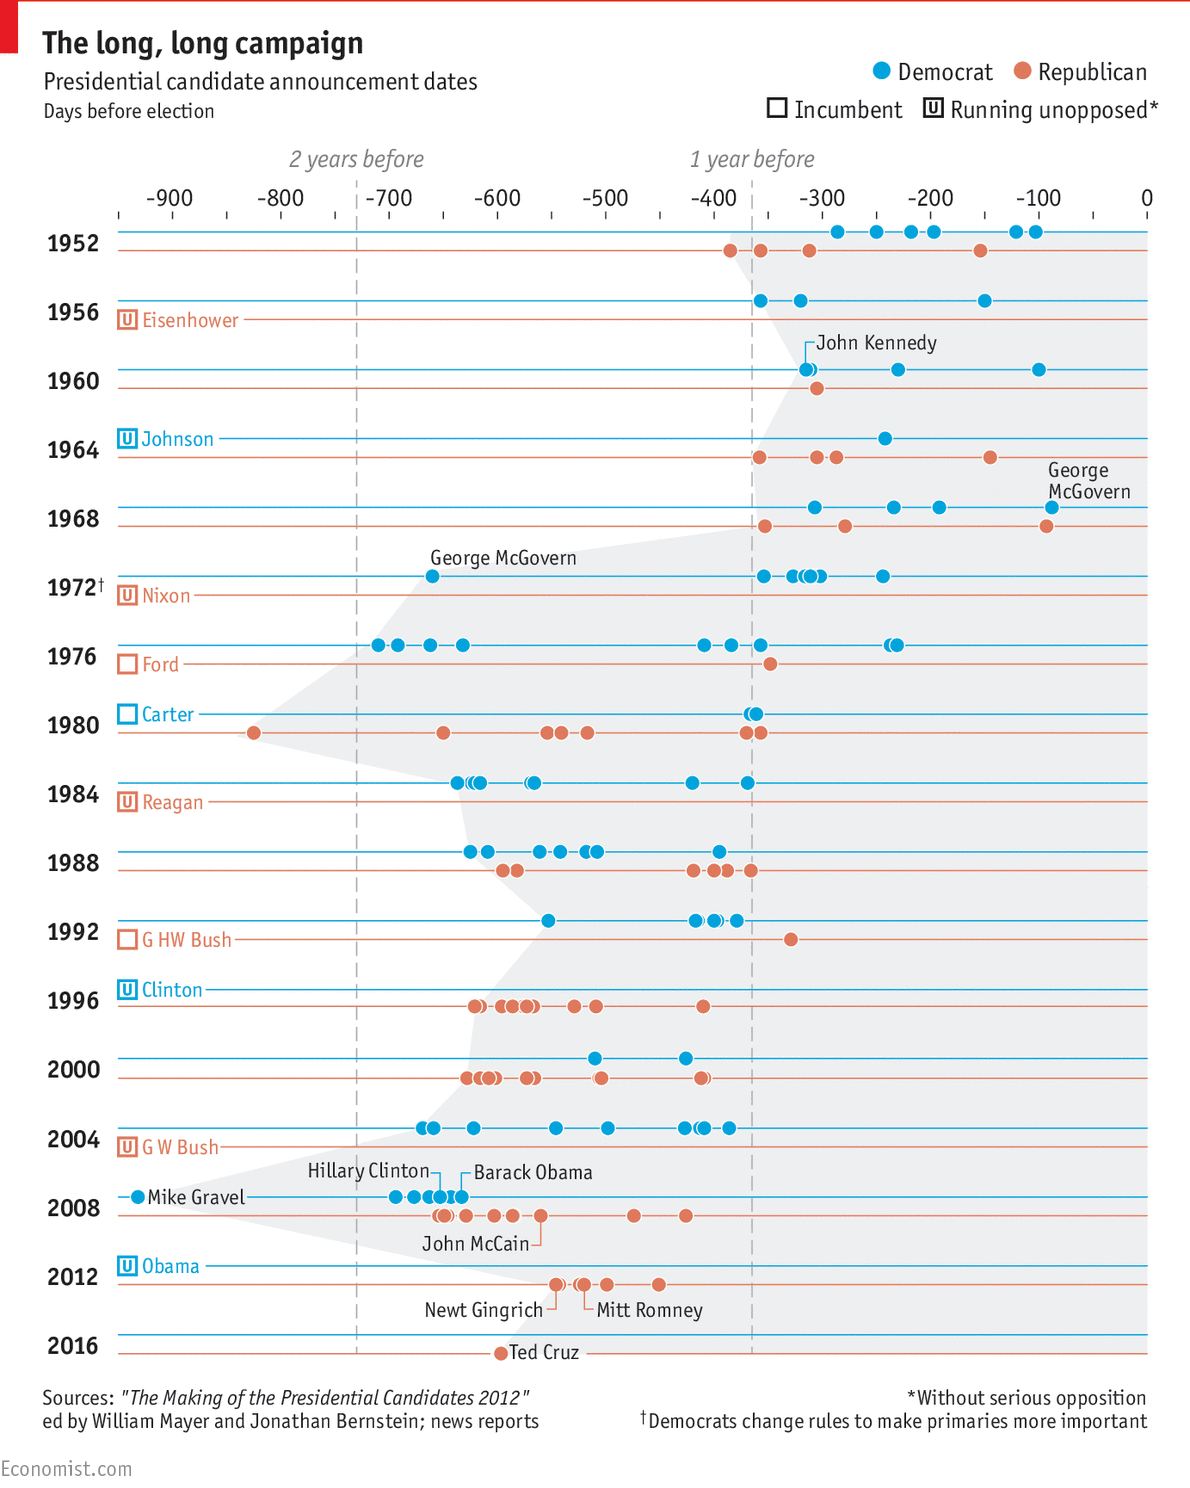 fromhttp://www.economist.com/blogs/graphicdetail/2015/03/us-presidential-candidate-announcements